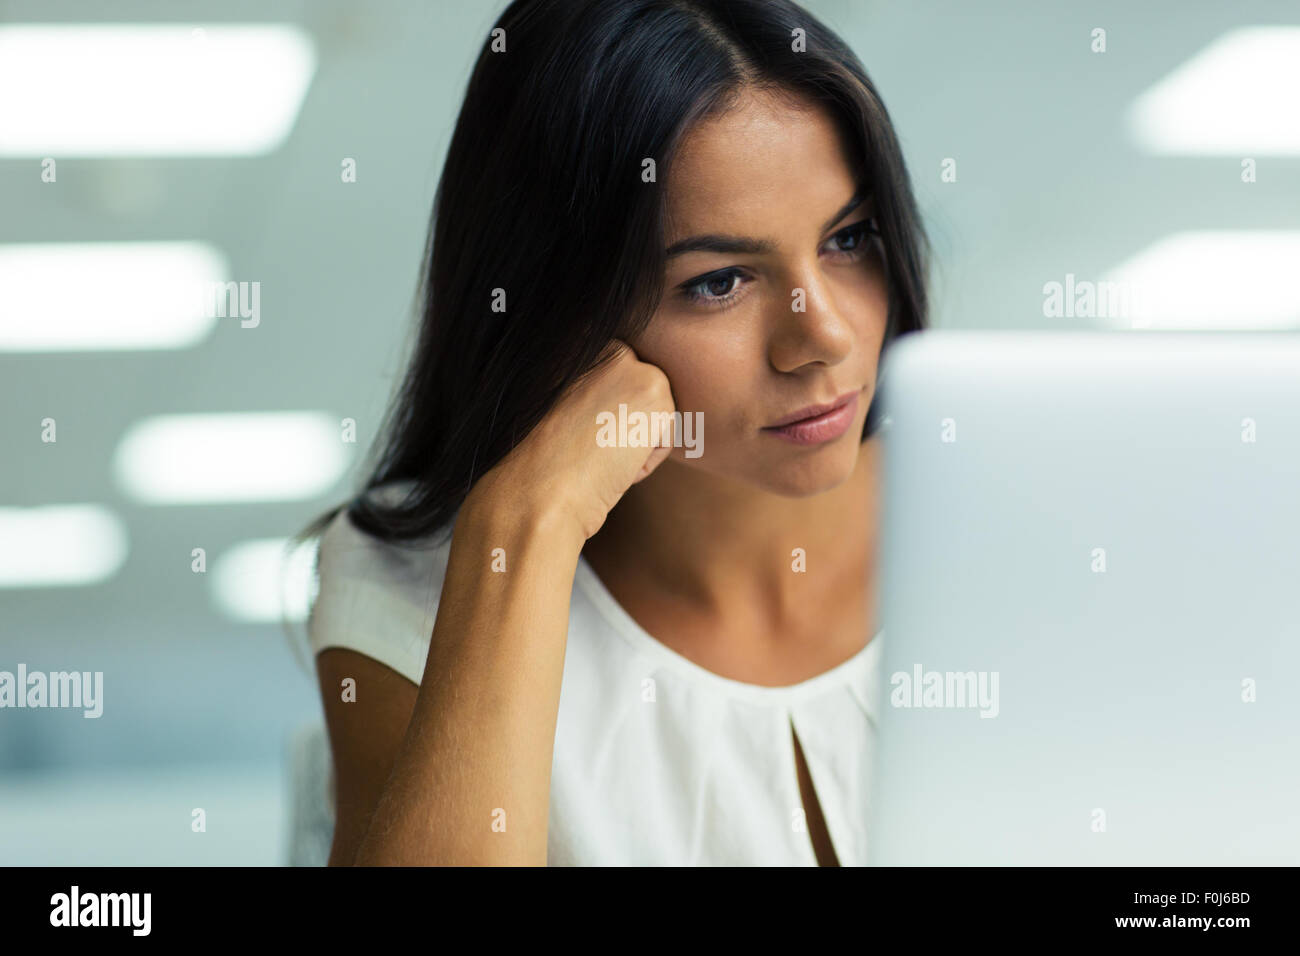 Portrait of a young Beautiful woman working on laptop in office Photo Stock